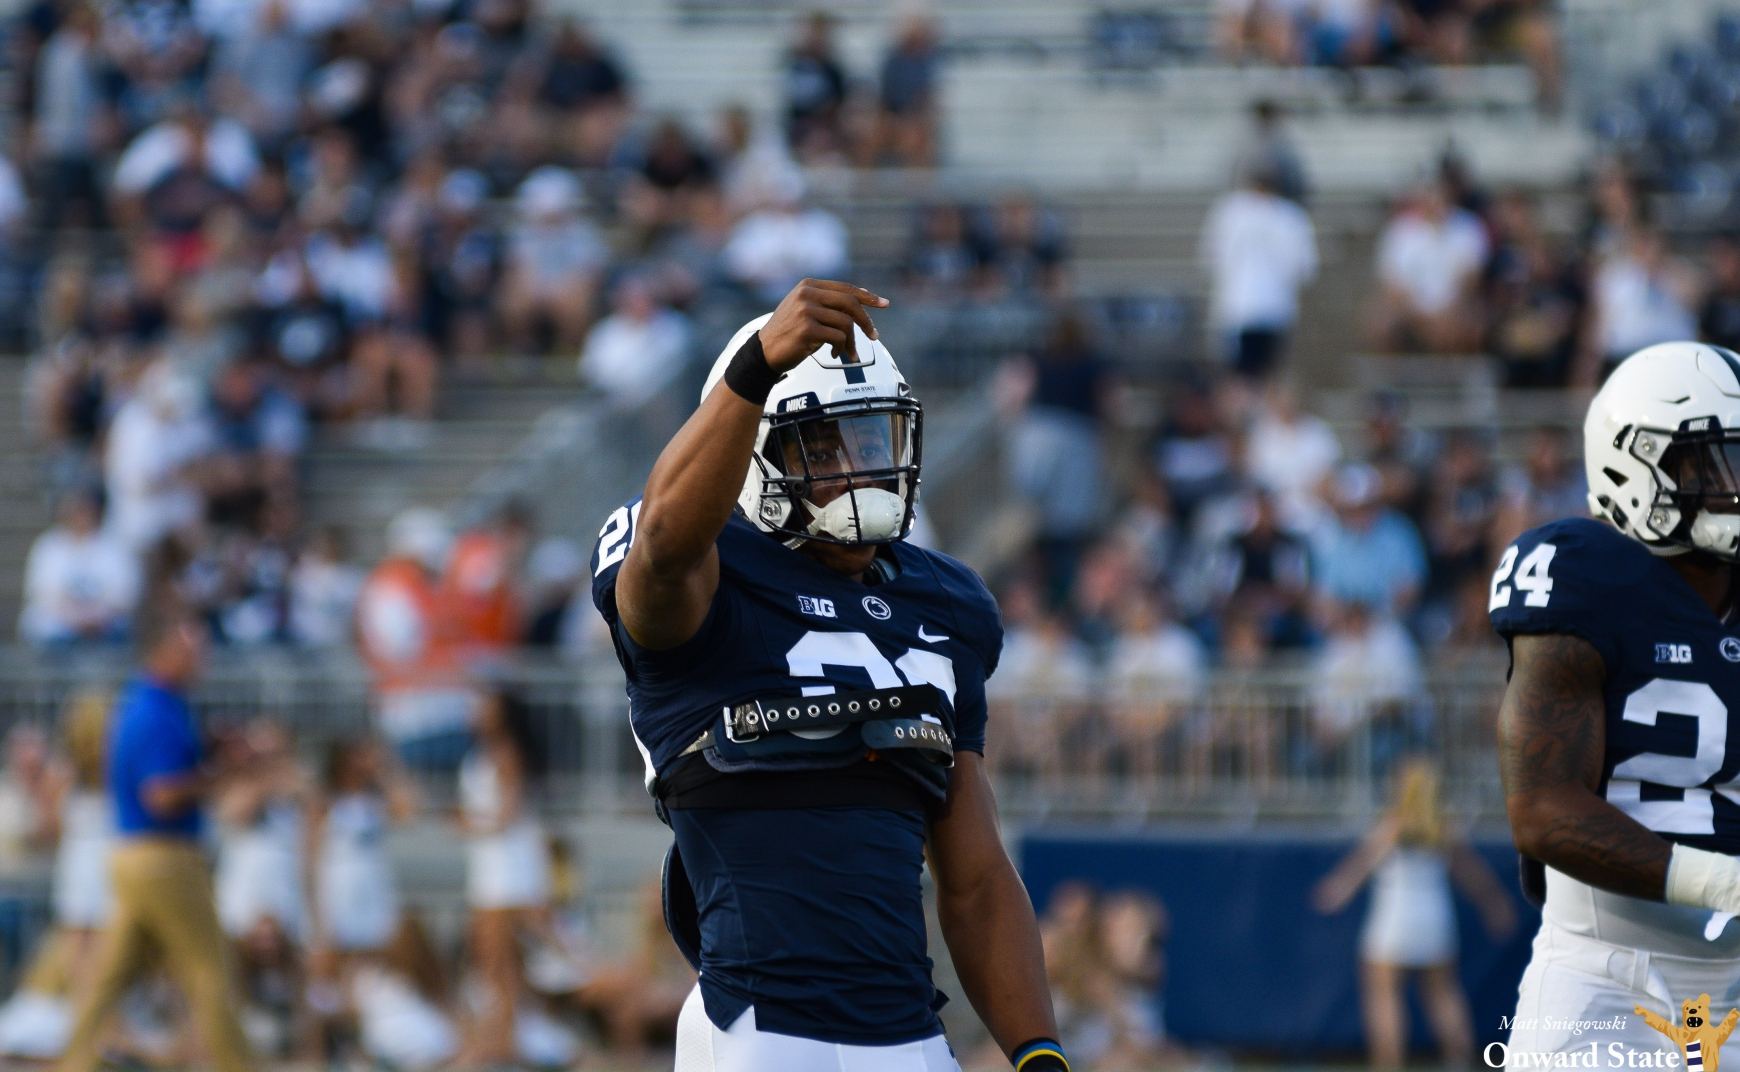 Saquon Barkley is surprised with a letter from his mom